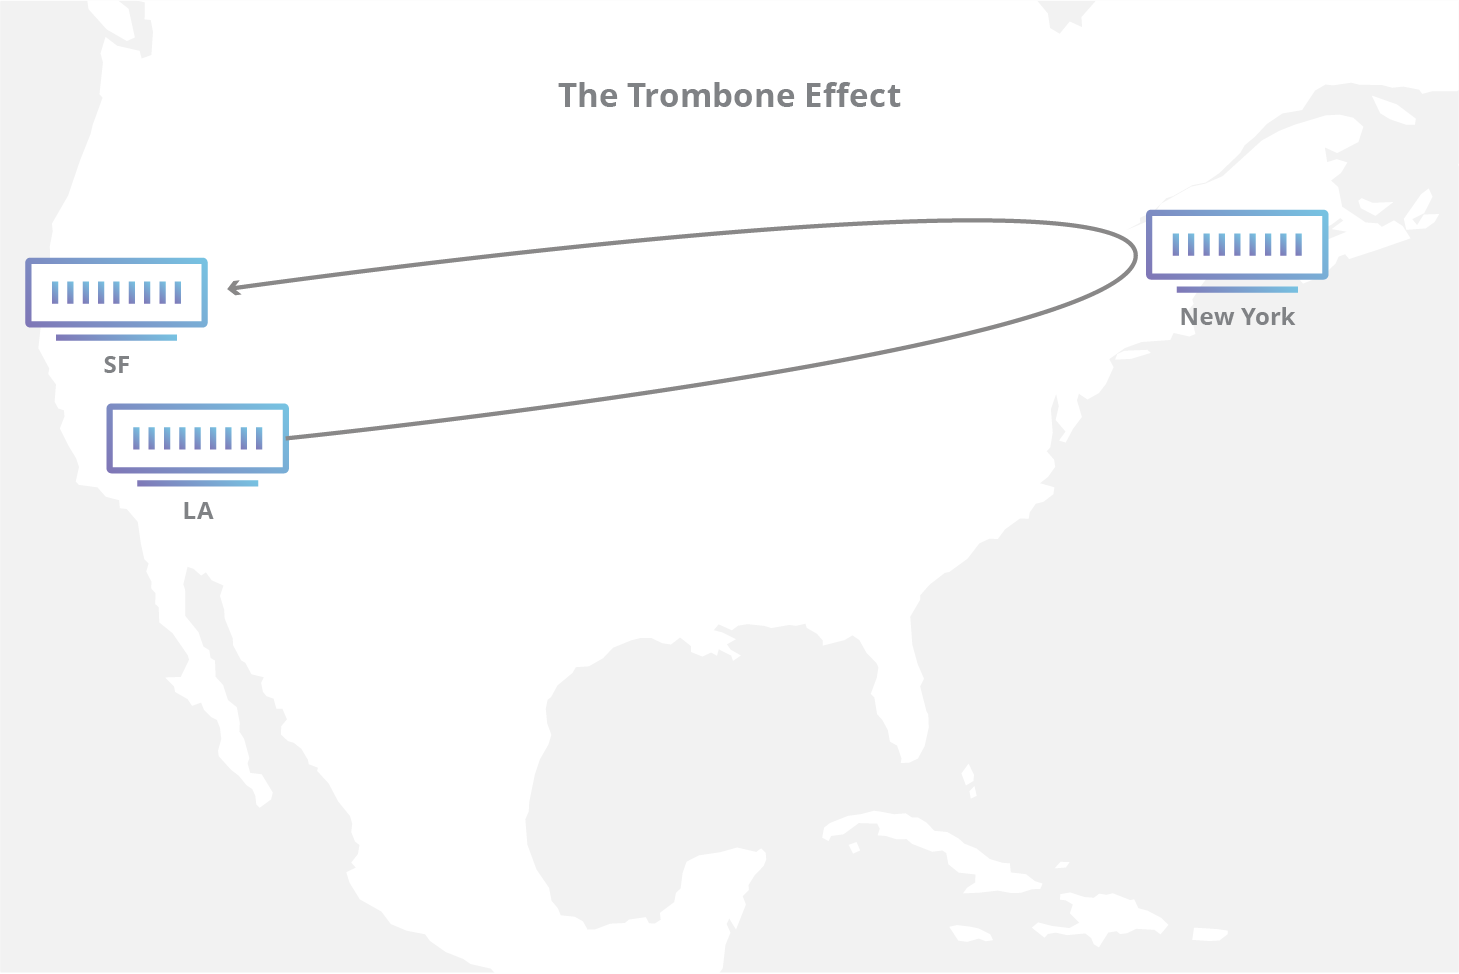 trombone effect - Does Using A Vpn Increase Ping